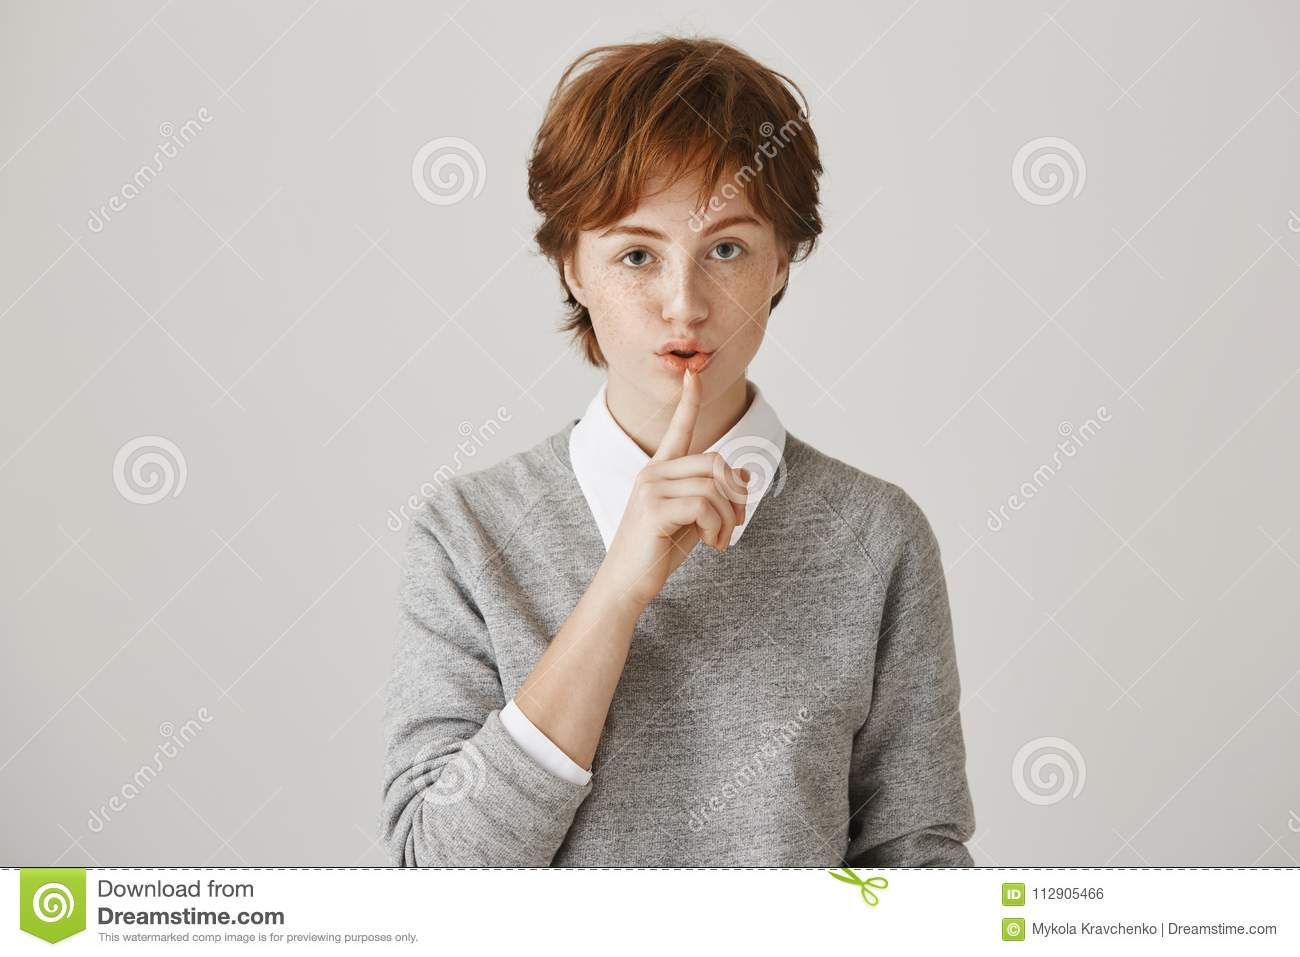 Portrait Of Serious Worried Redhead Woman With Short Messy Haircut And  Freckles Saying Shush While Holding Index Finger Stock Photo - Image of  happy, fashion: 112905466